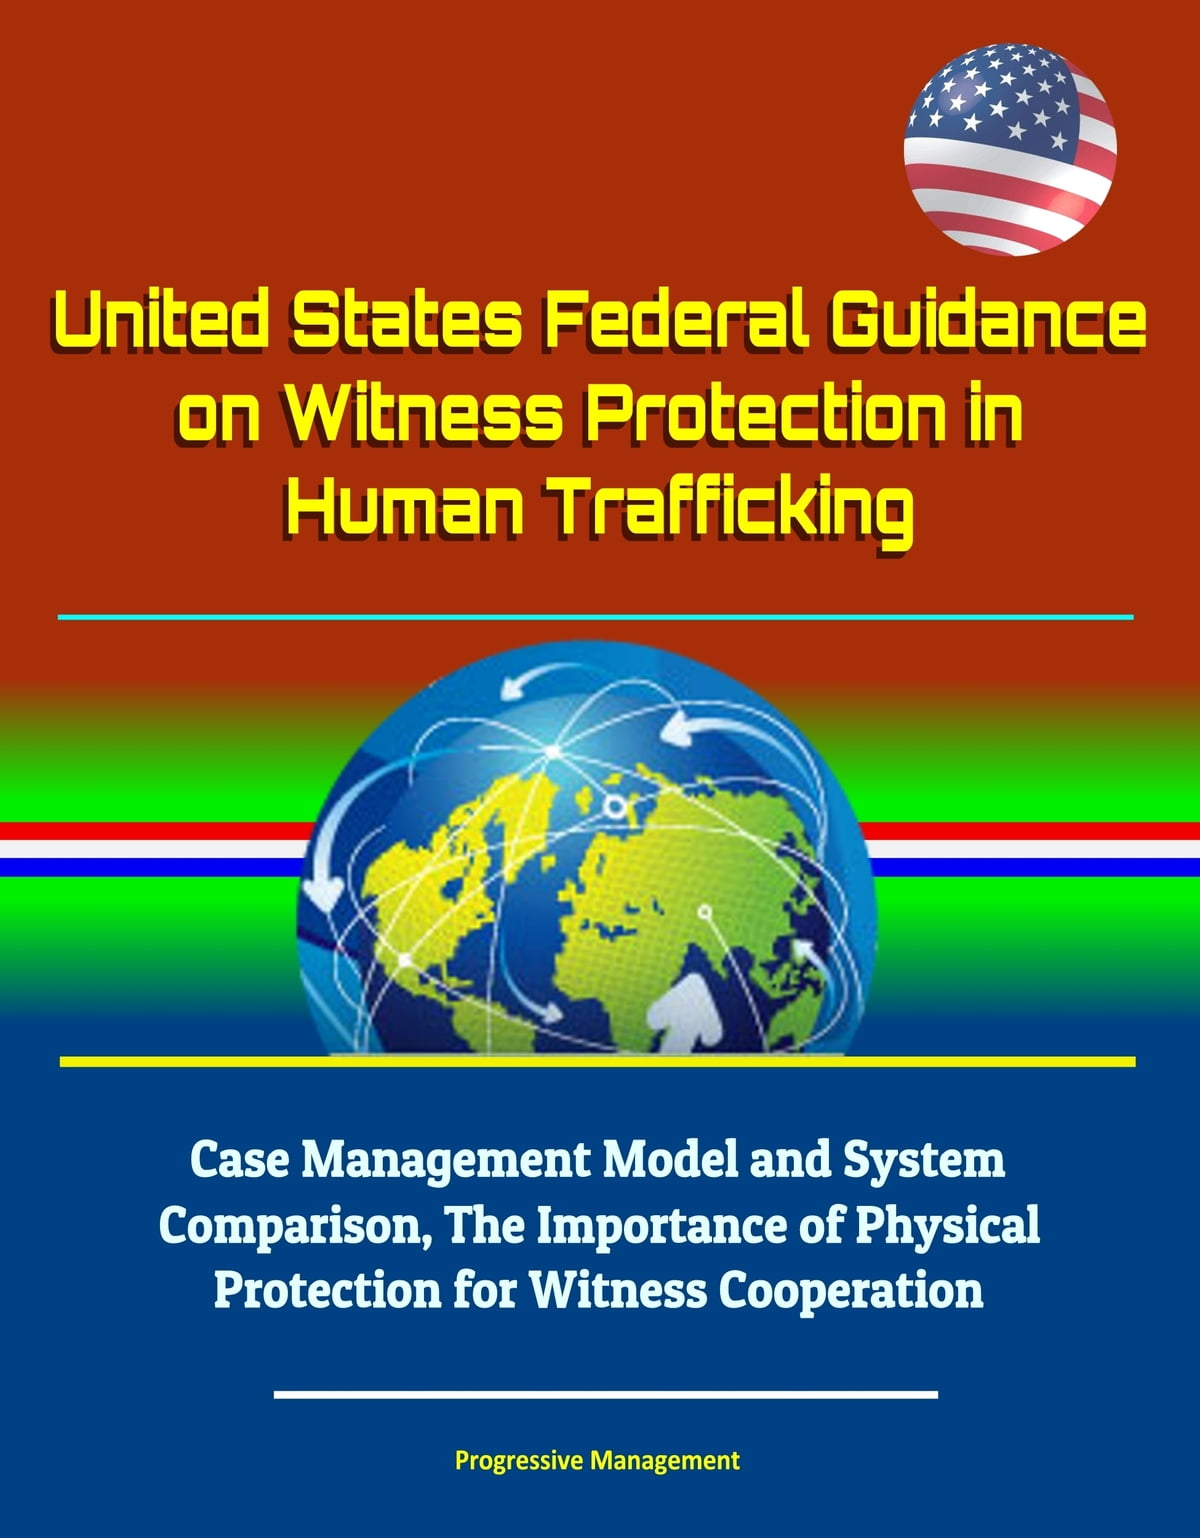 United States Federal Guidance on Witness Protection in Human Trafficking:  Case Management Model and System Comparison, The Importance of Physical